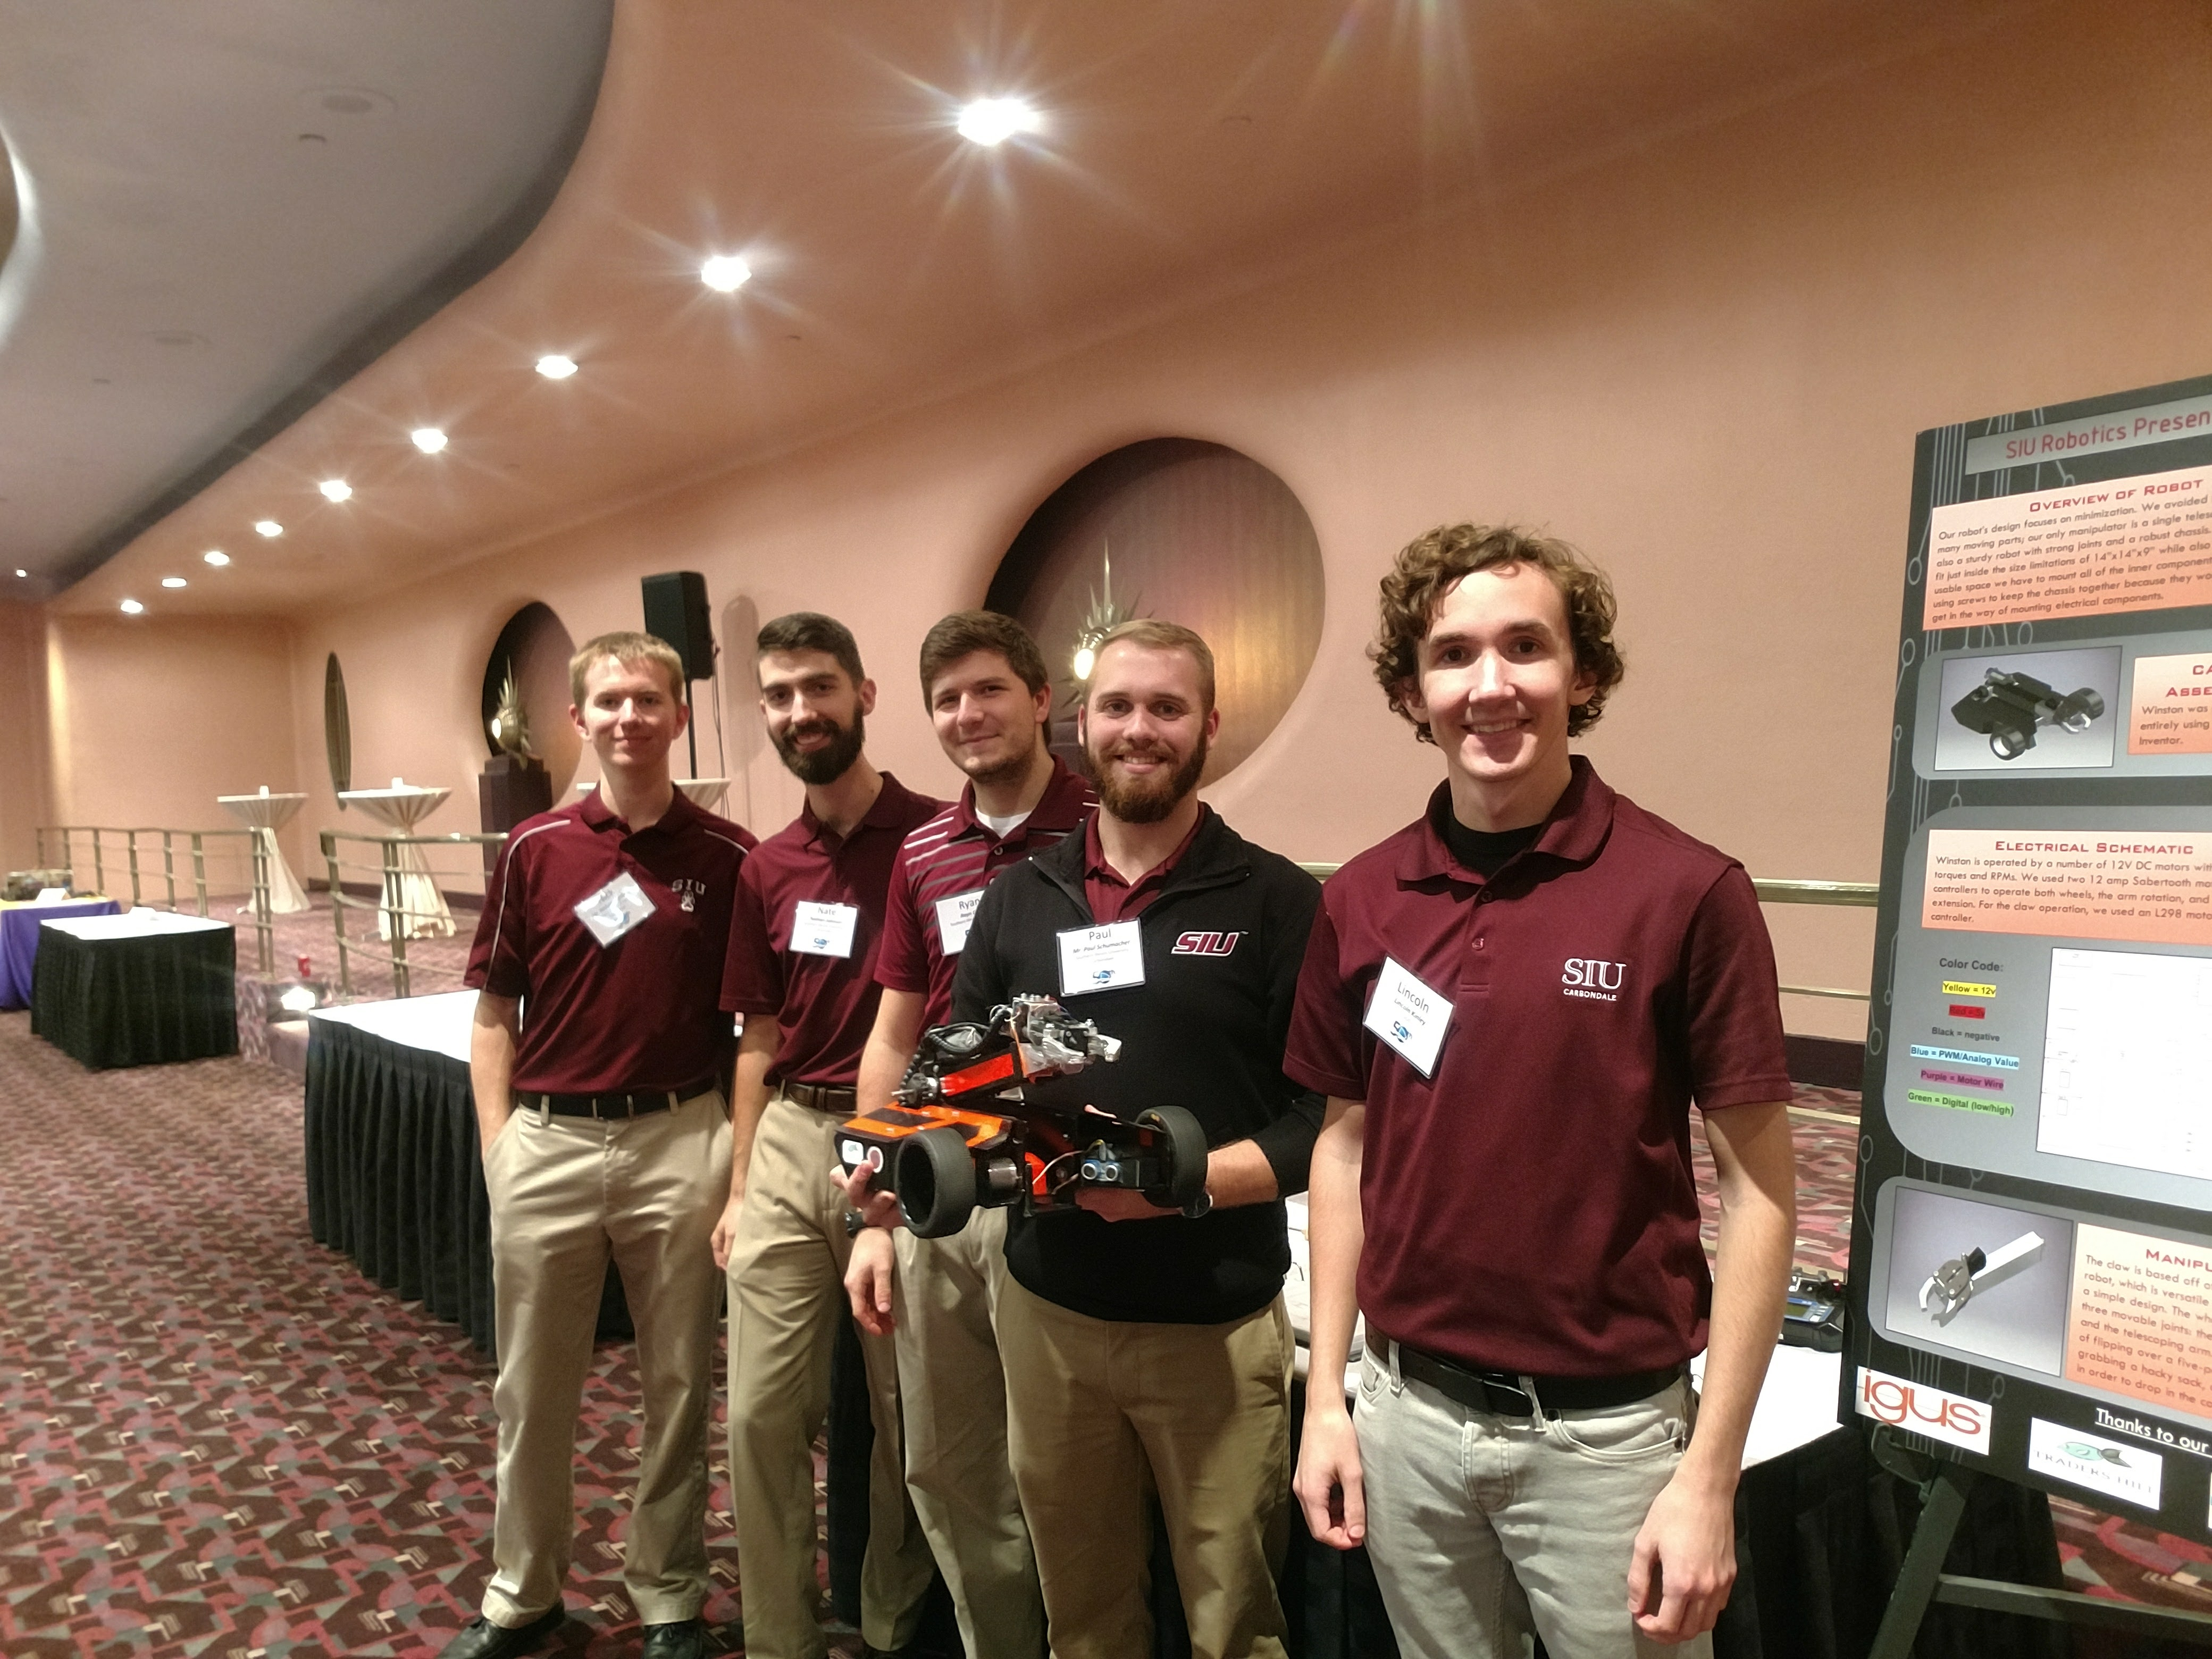 The robotics team at Southern Illinois University Carbondale